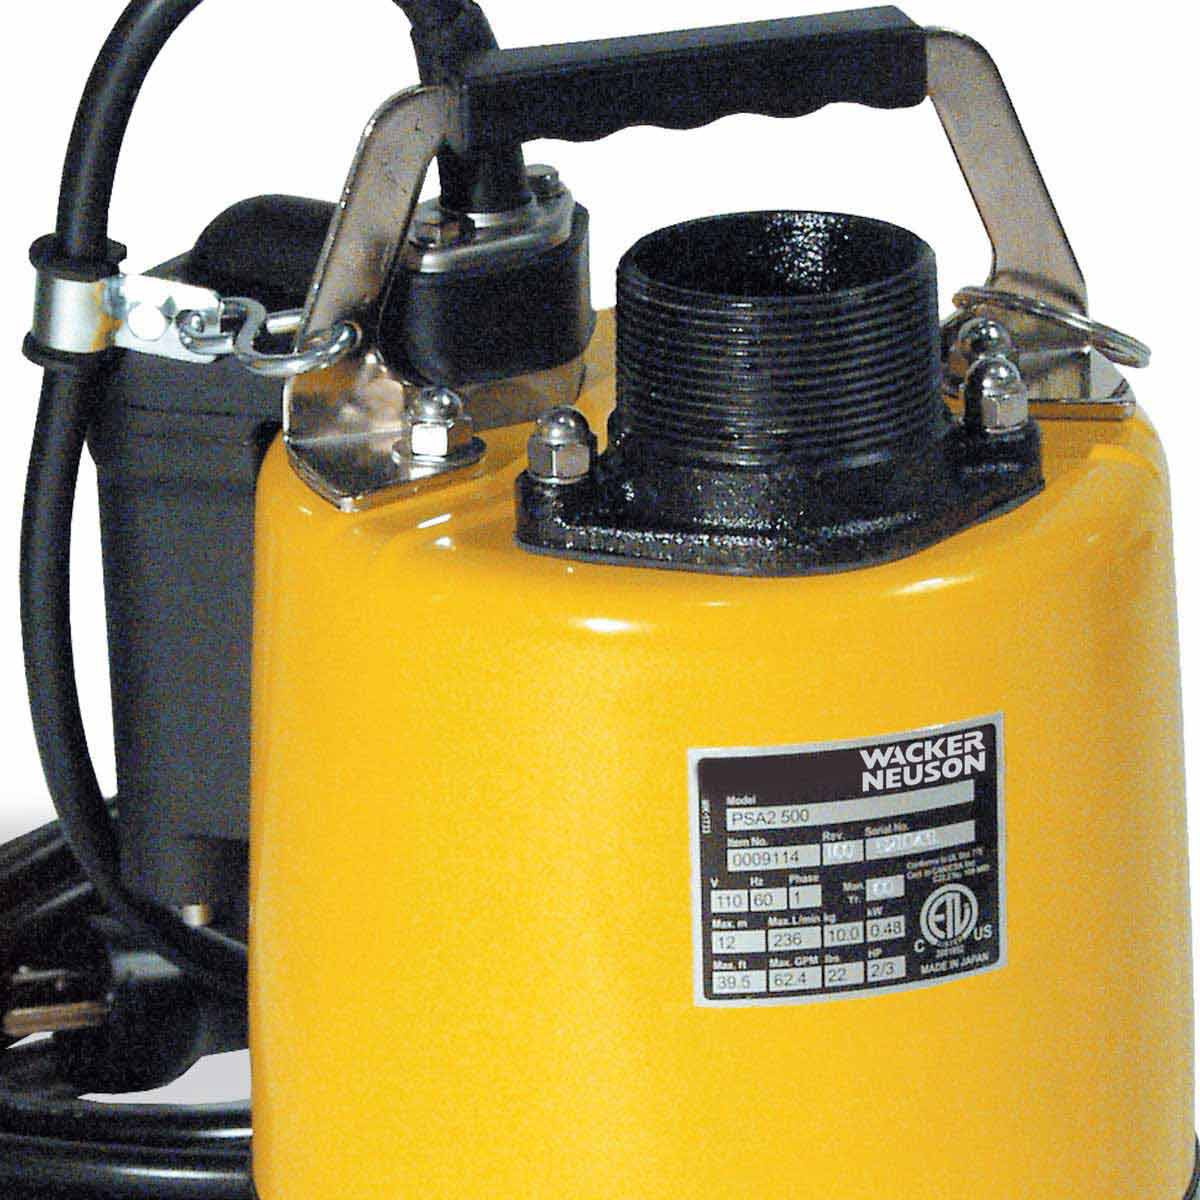 2 inch PSA2500 Submersible Pump 110V Wacker Neuson